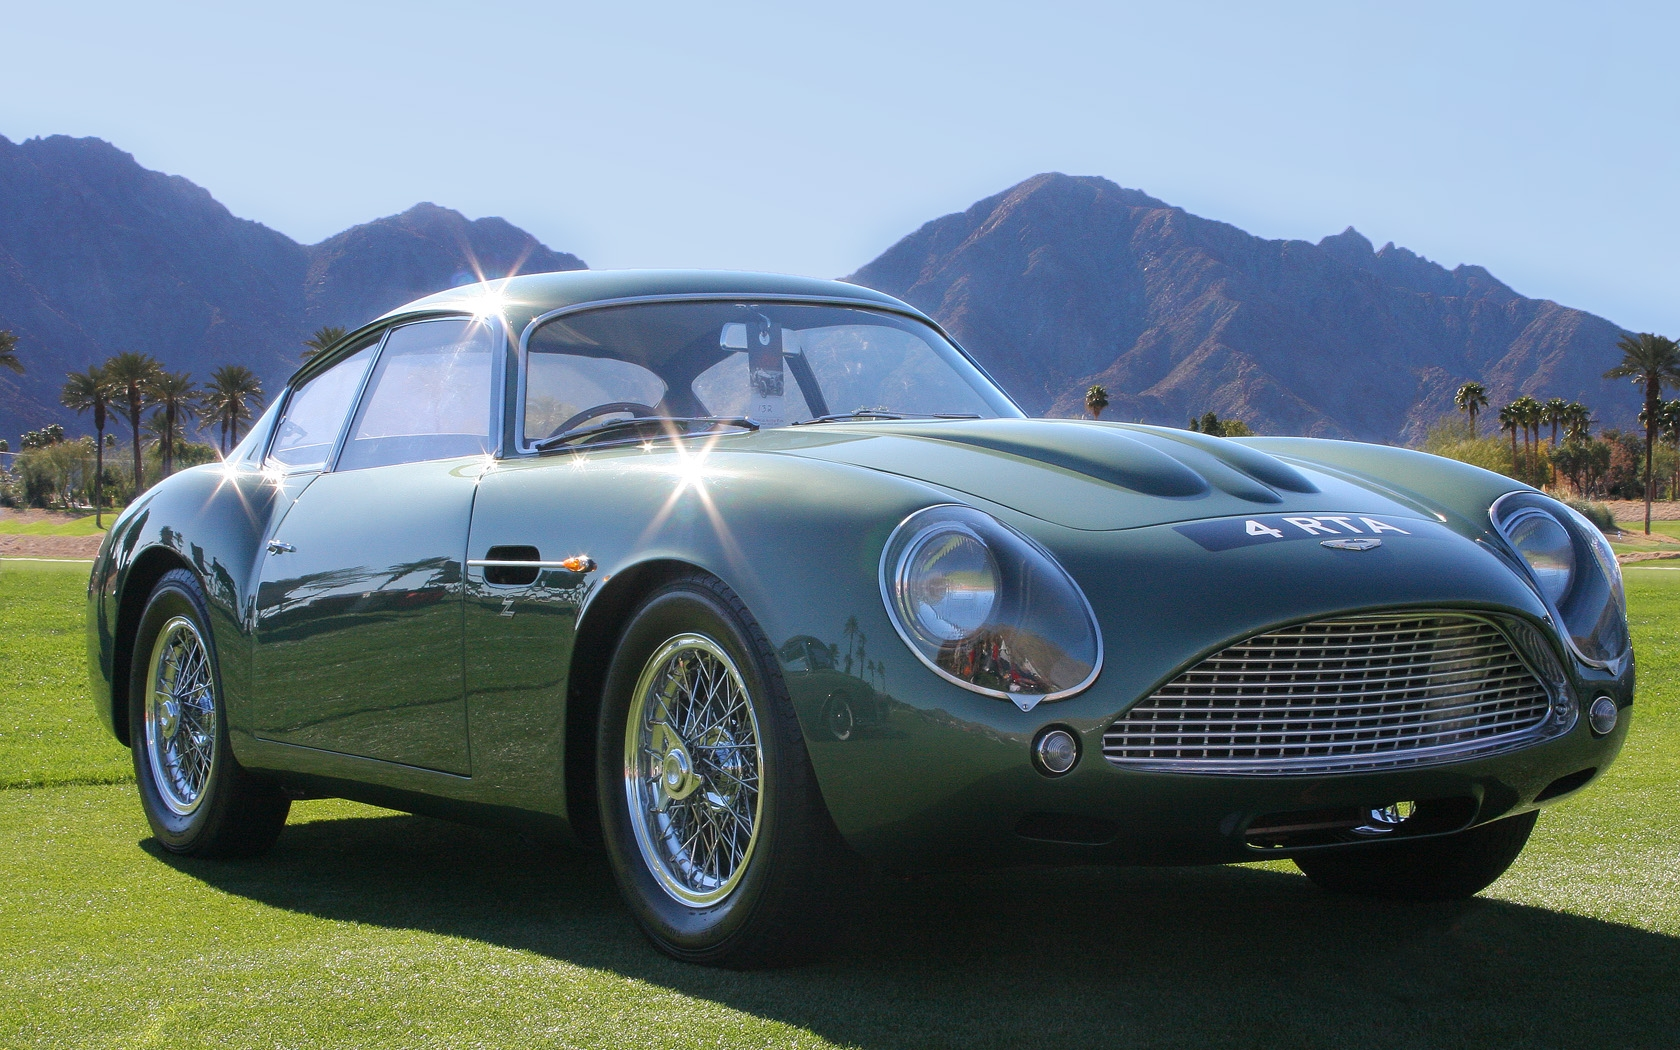 aston martin db4 gt zagato group gt 1962 racing cars. Black Bedroom Furniture Sets. Home Design Ideas